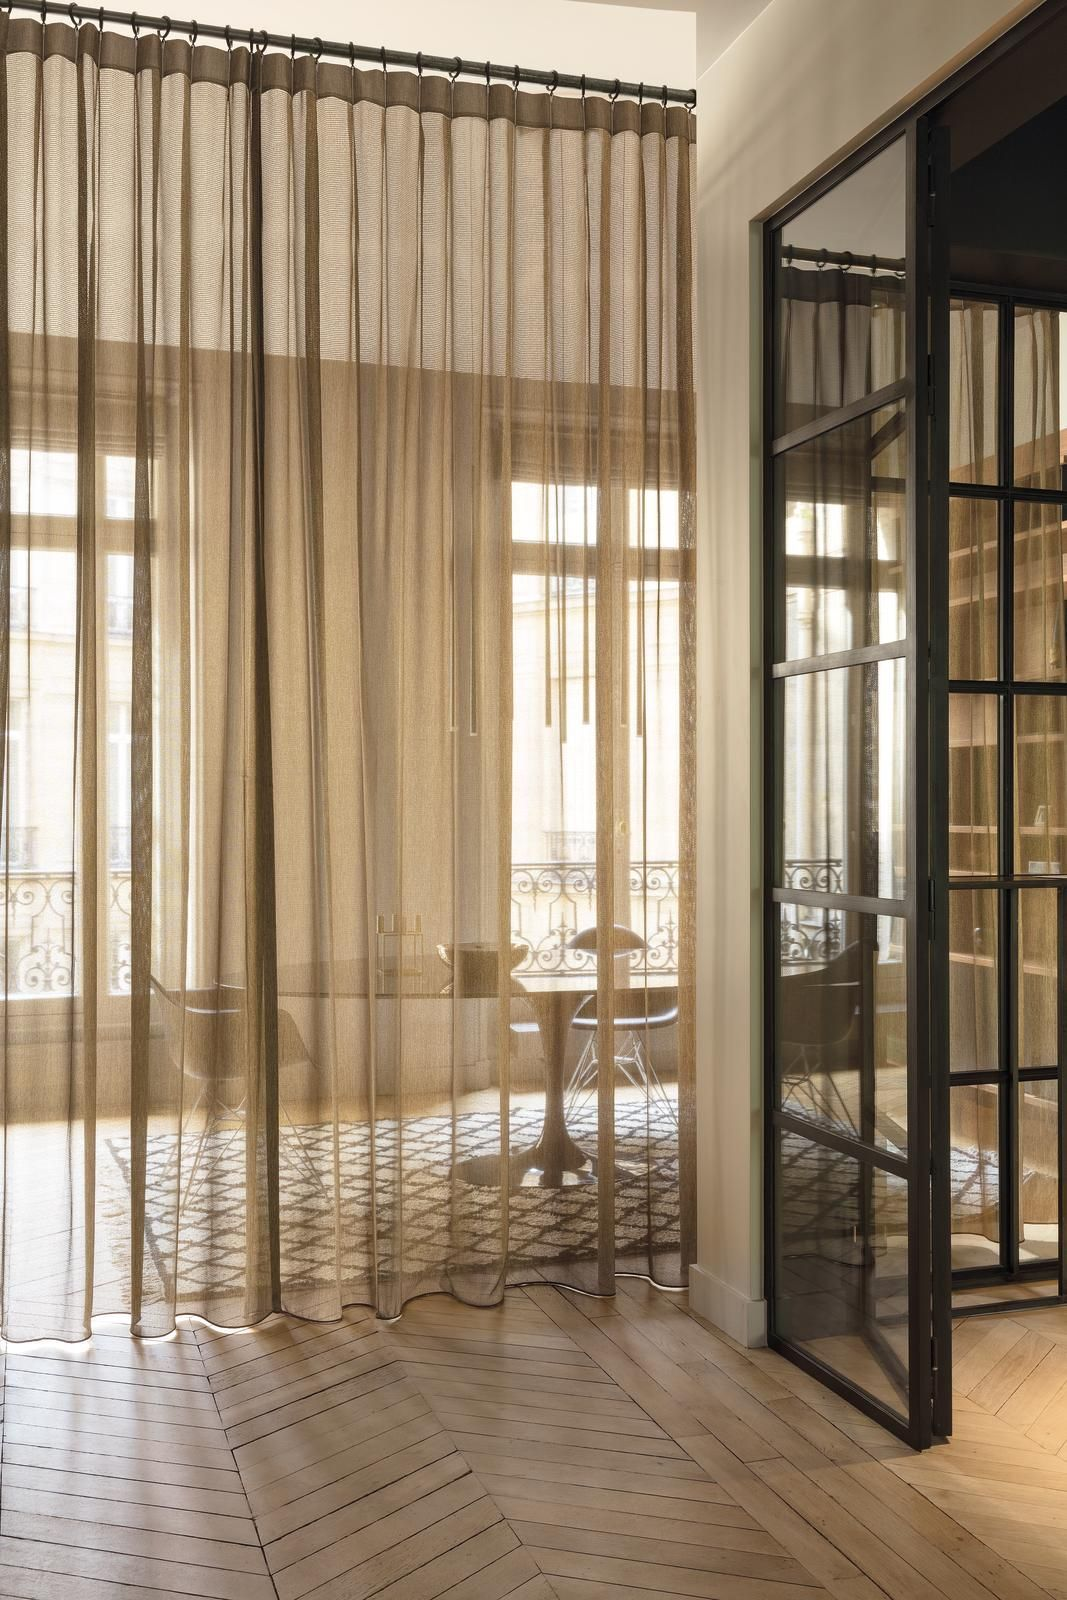 33 Marvelous Room Divider Ideas To Optimize Your Space Room